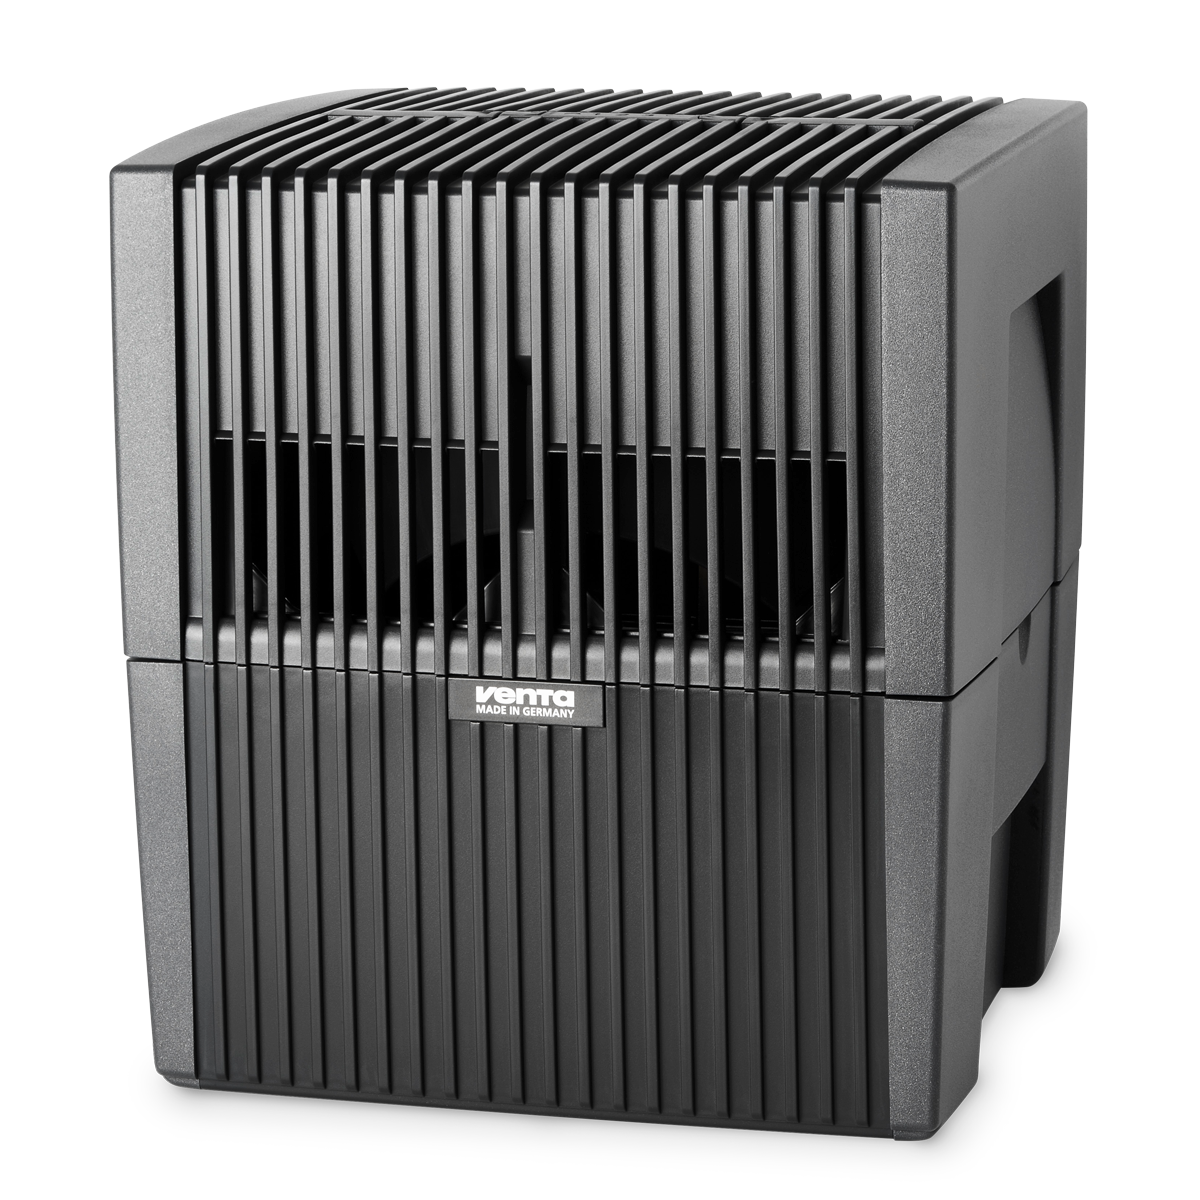 Best Air Purifier and Humidifier Combo - #3 Venta Airwasher 2 in 1 LW25 (Black)